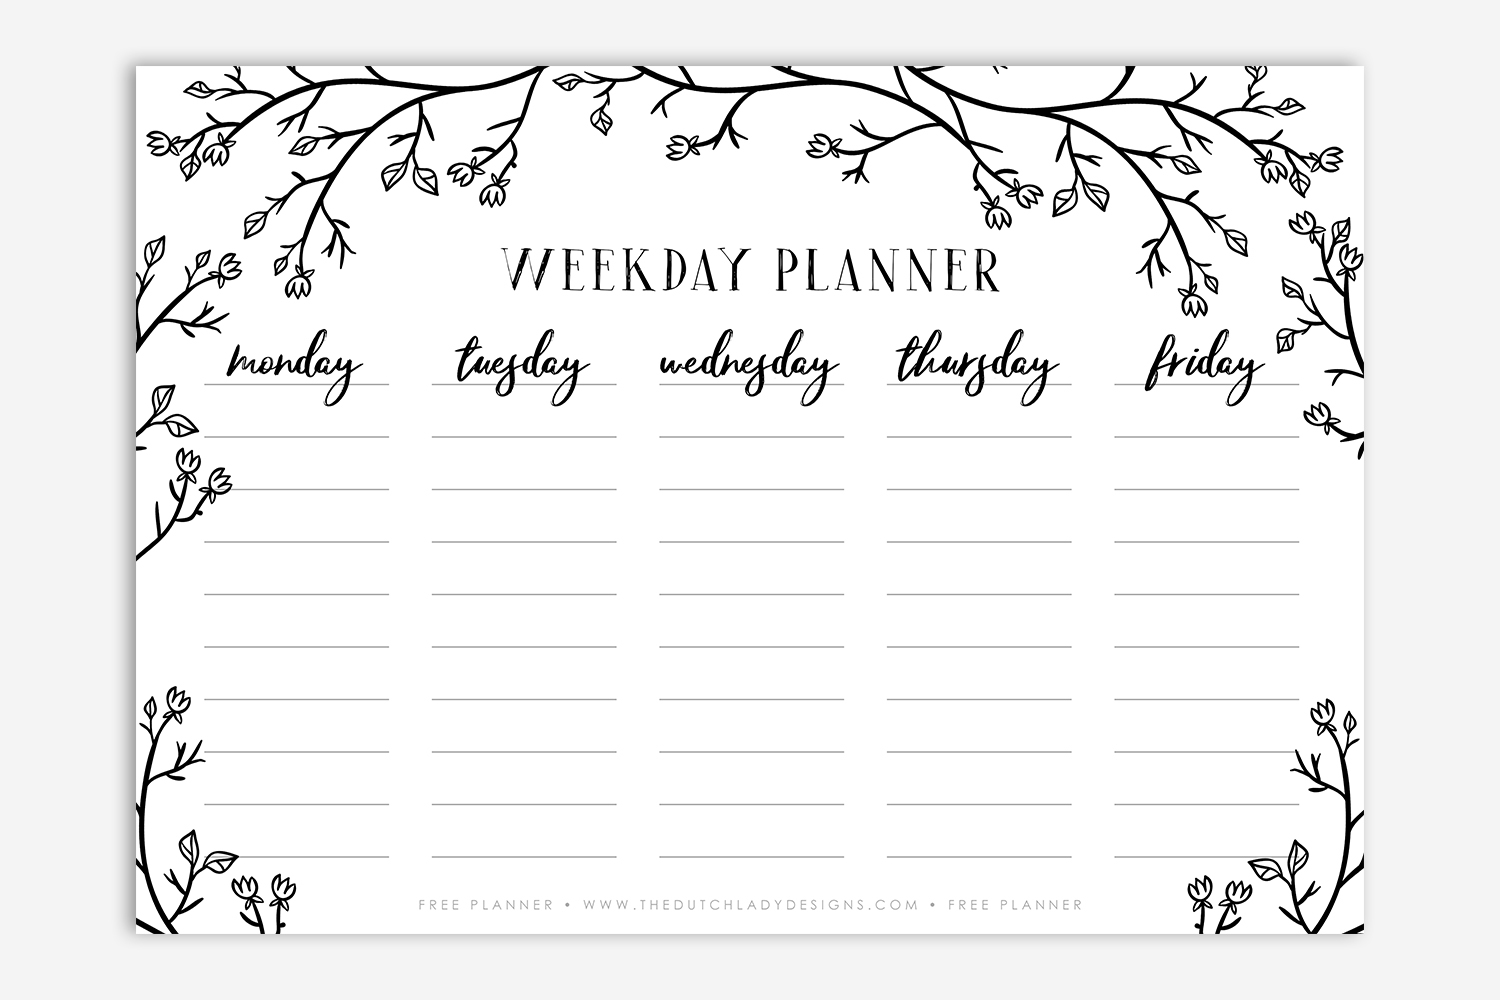 sharing is caring episode 3 free printable weekday planner the